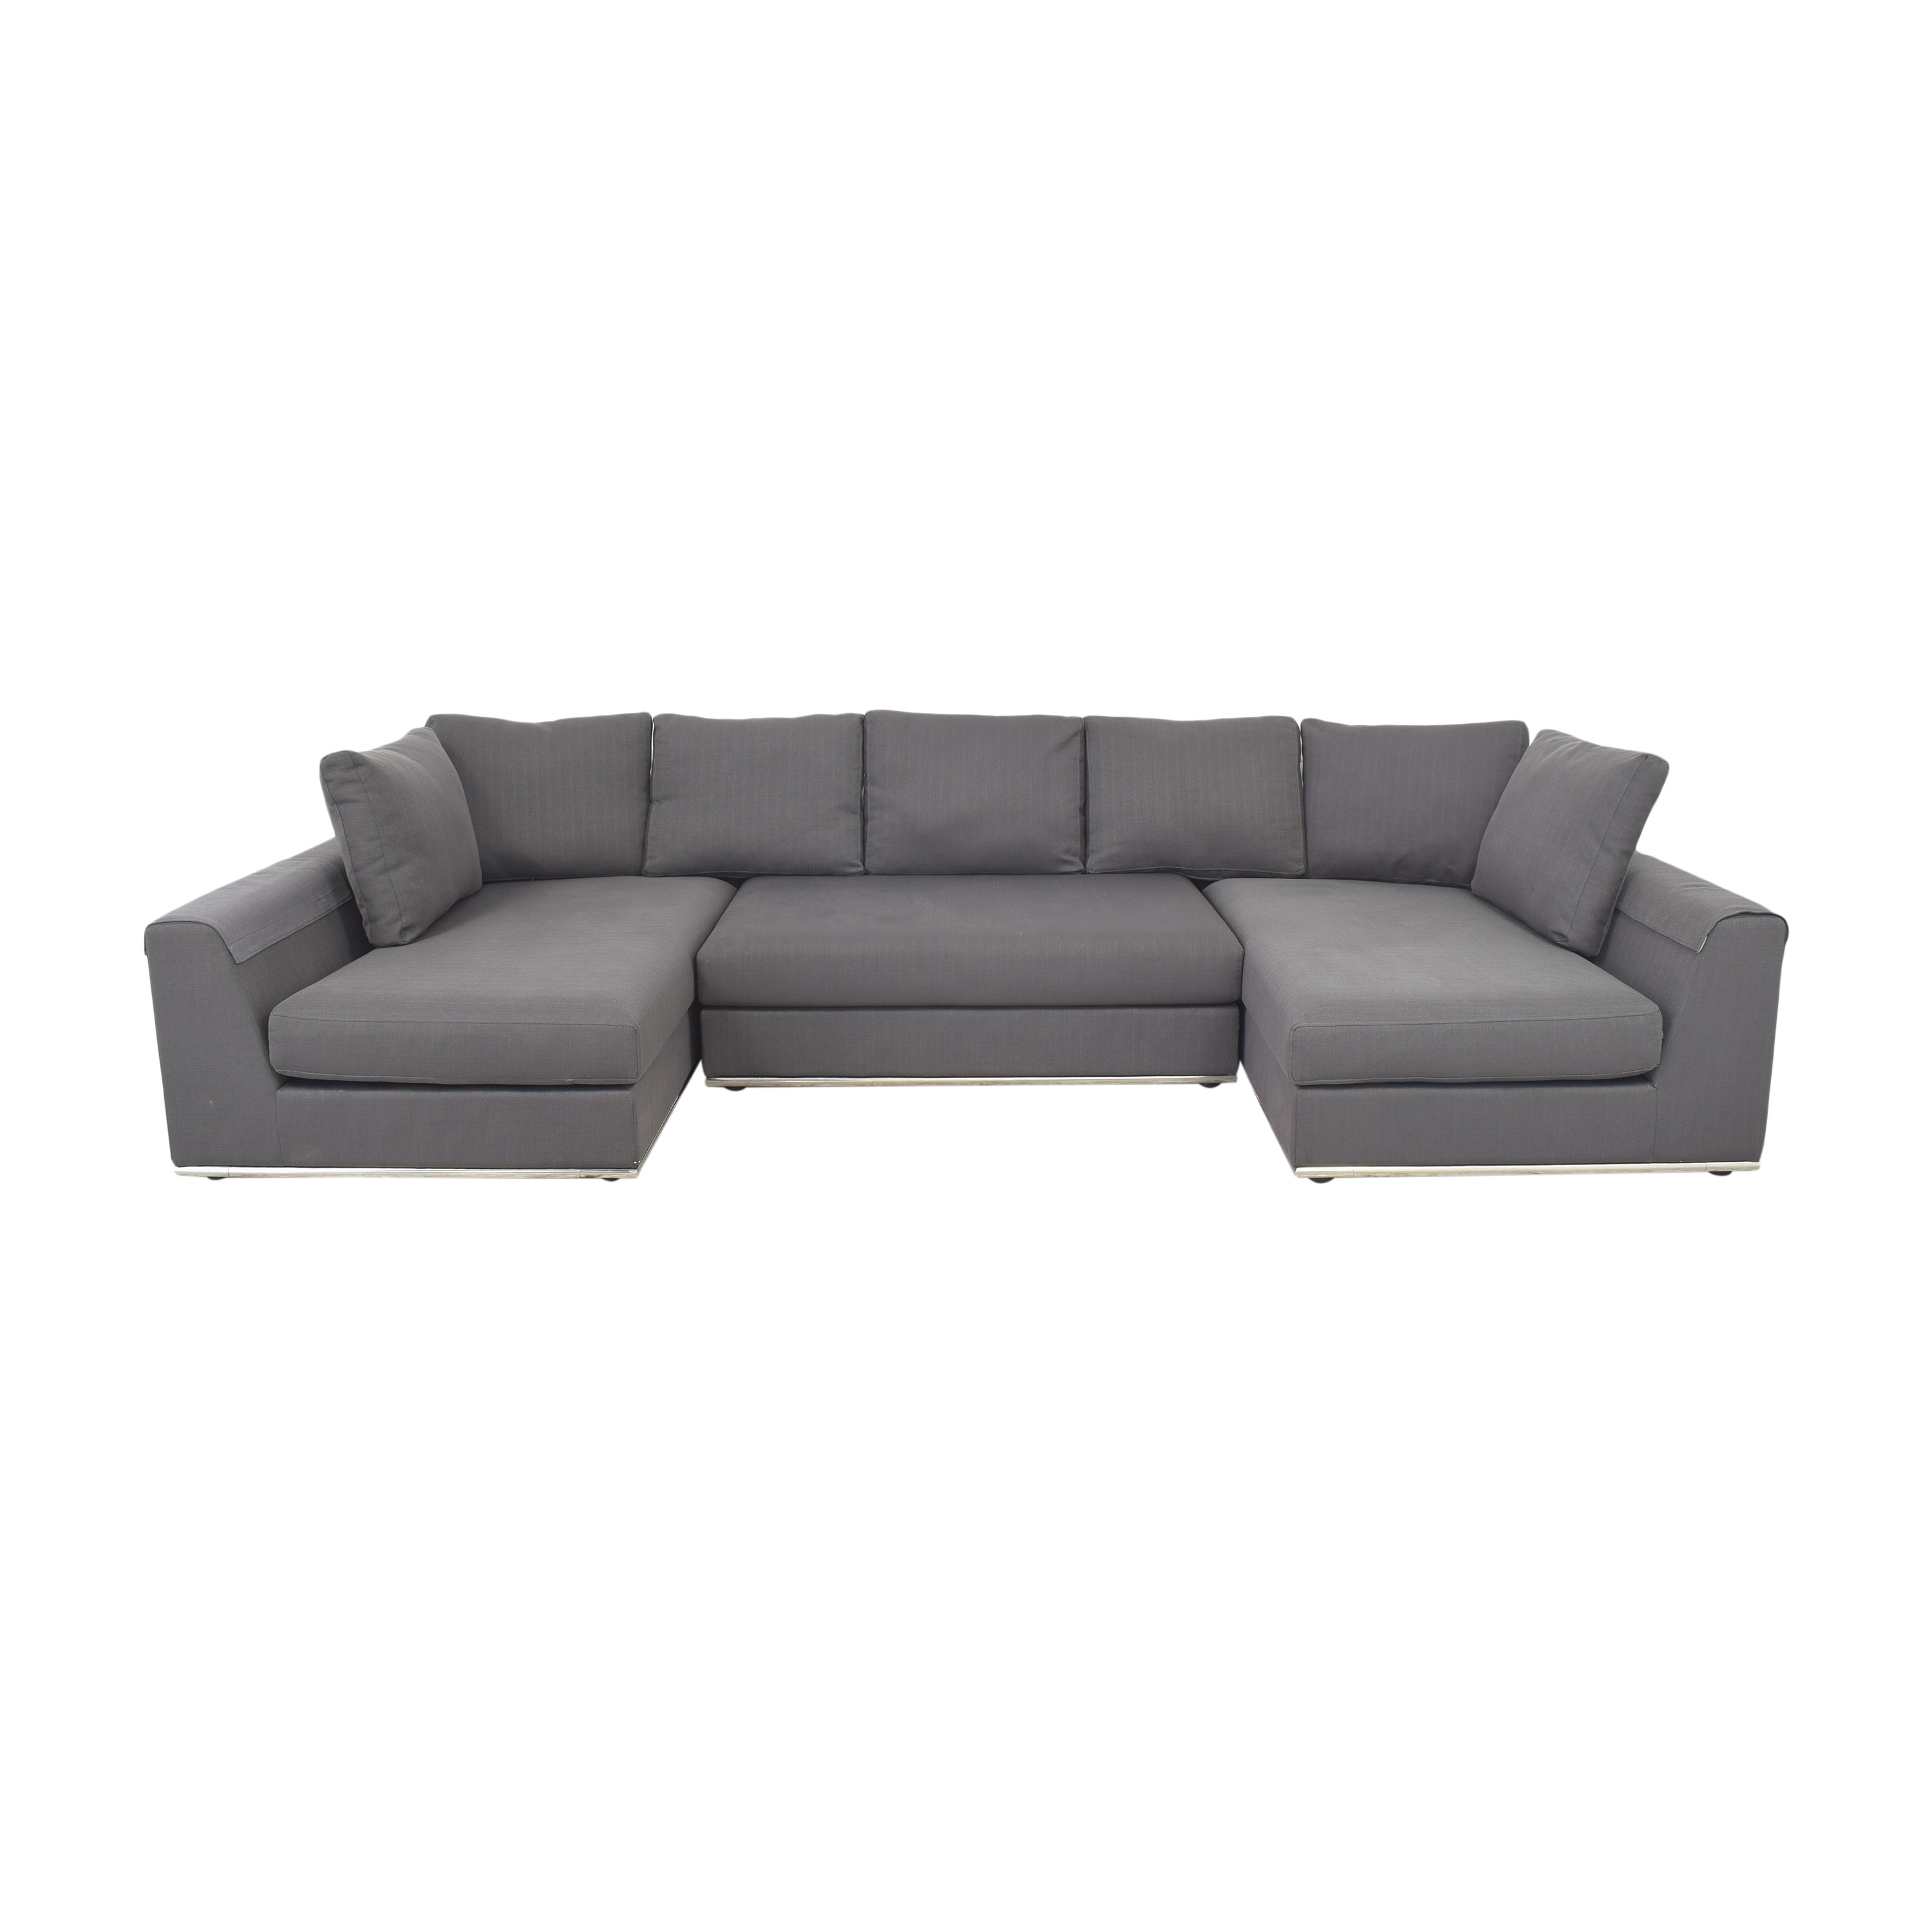 shop Modani Modani Sectional Sofa with Two Chaises online